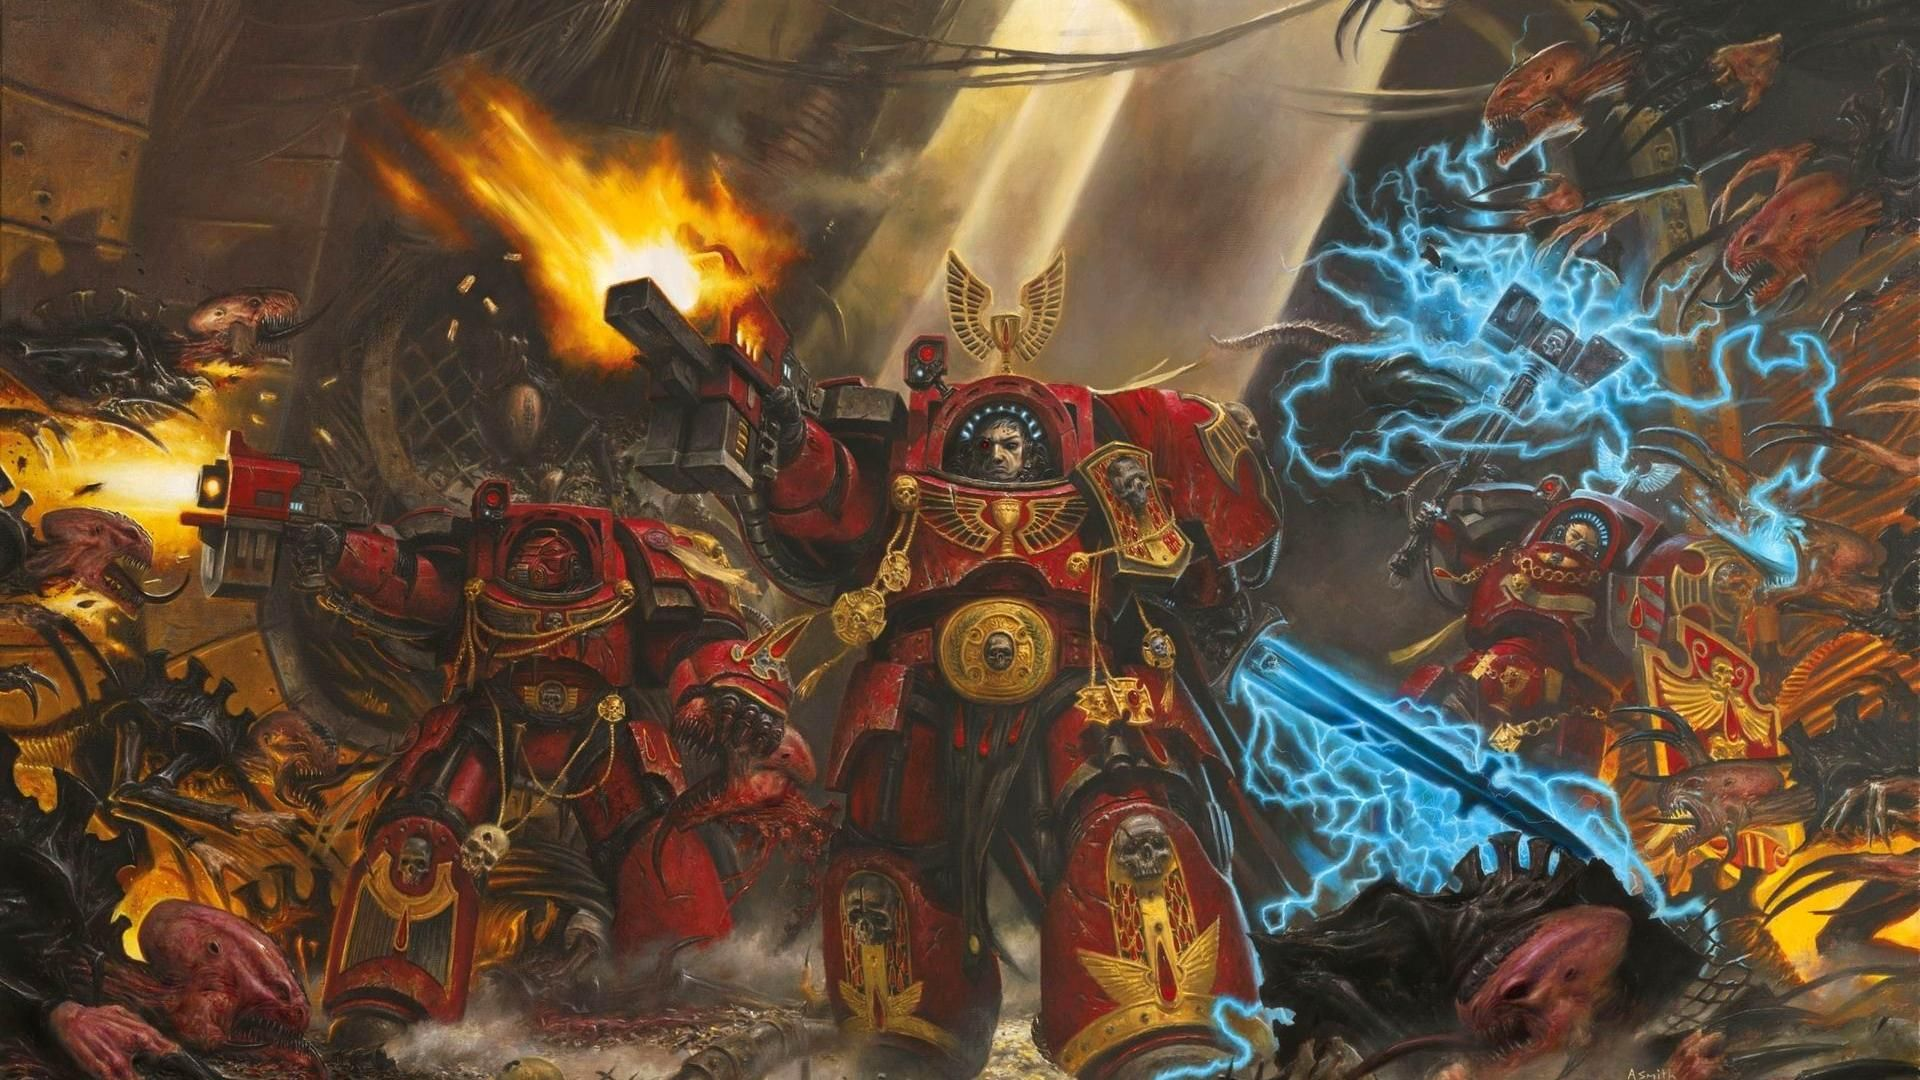 Pin On Glorious Warhammer Art